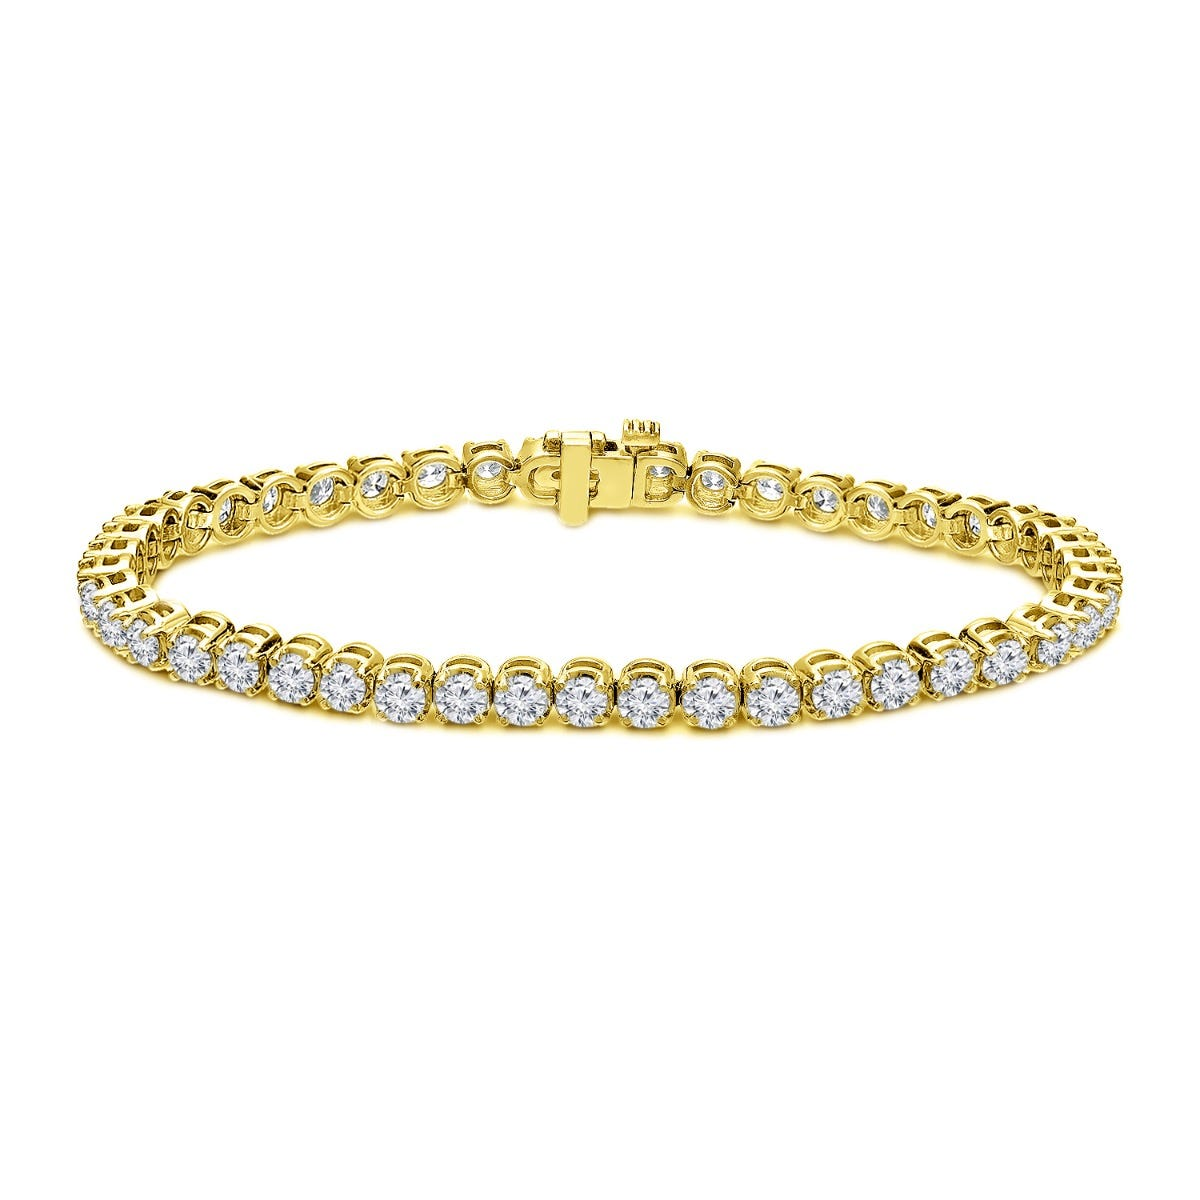 6ctw. 4-Prong Round Link Diamond Tennis Bracelet in 14K Yellow Gold  (IJ, I1-I2)